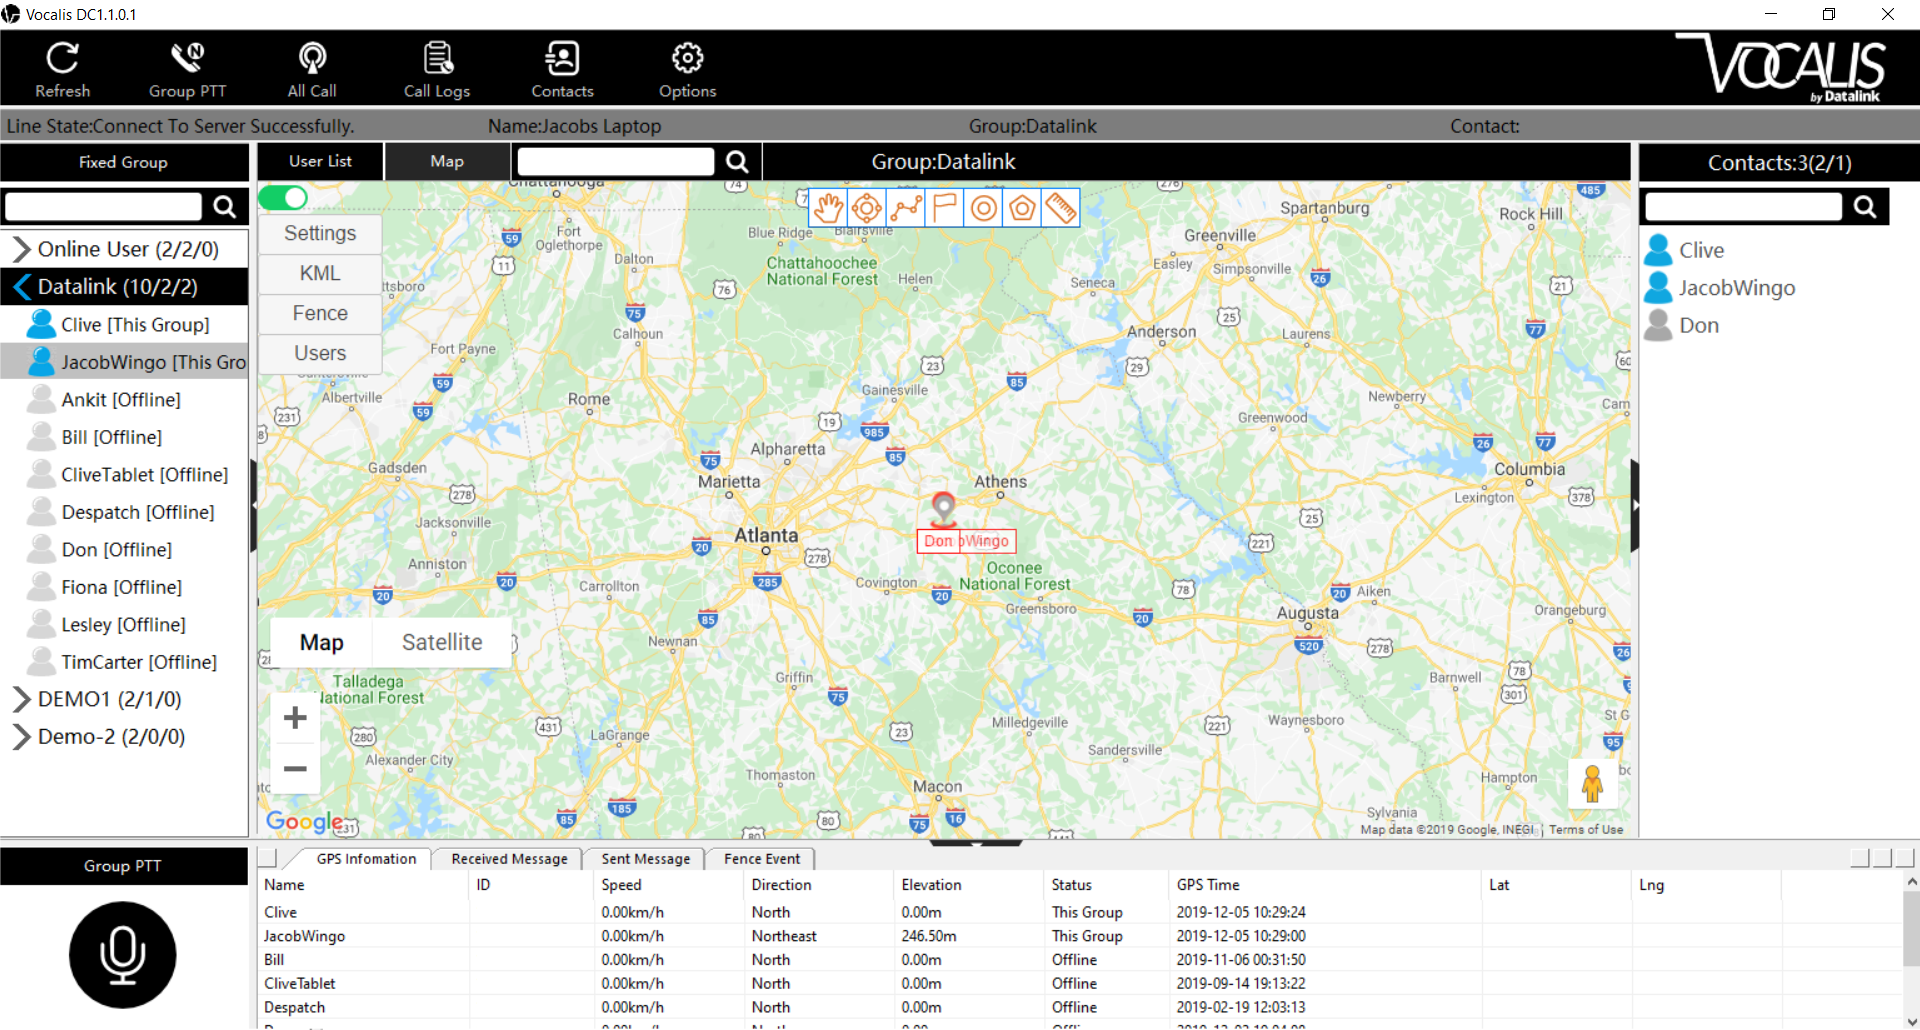 Vocalis DC dispatch console screenshot of map view